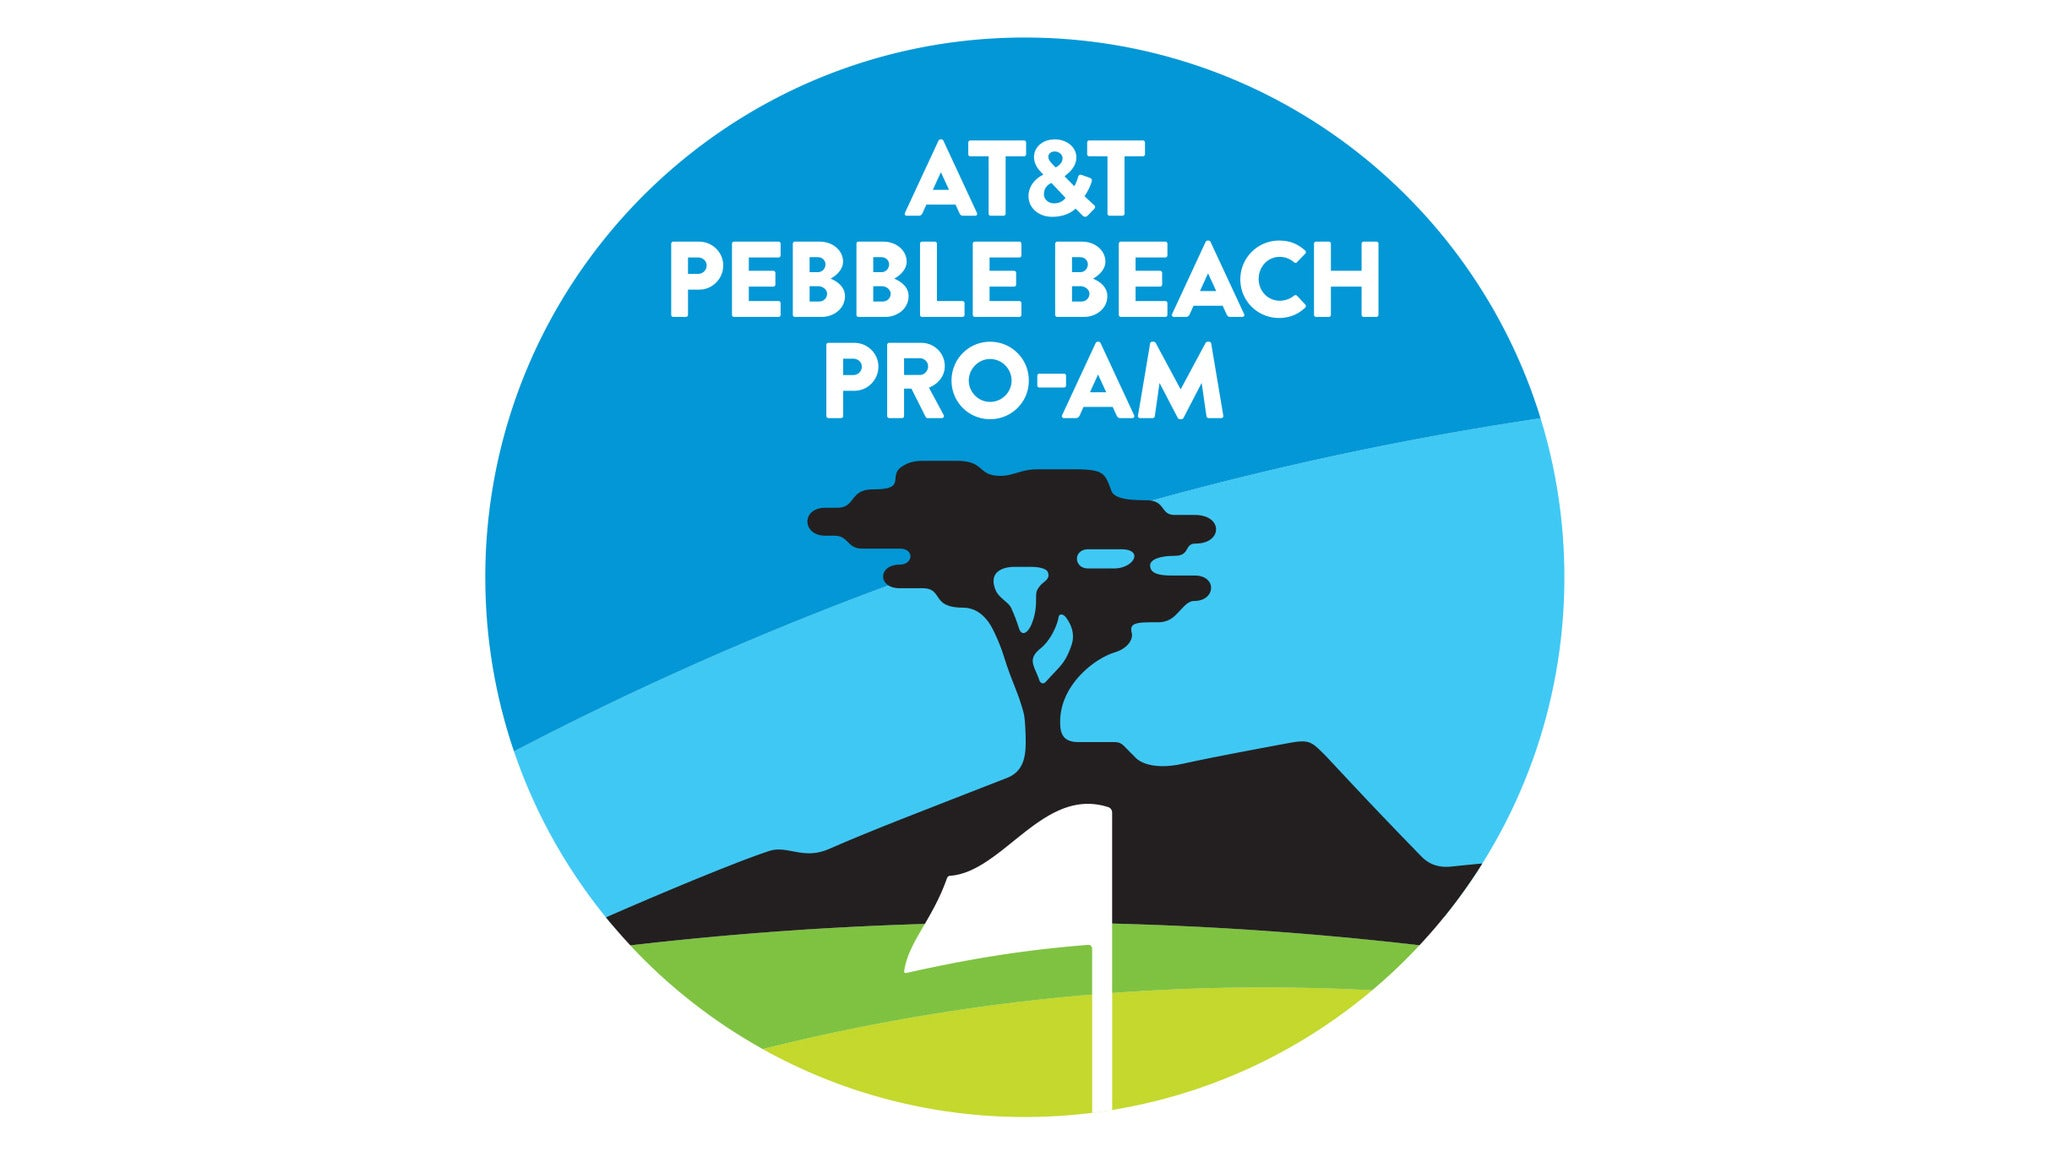 Any Day Ticket: AT&T Pebble Beach Pro-Am